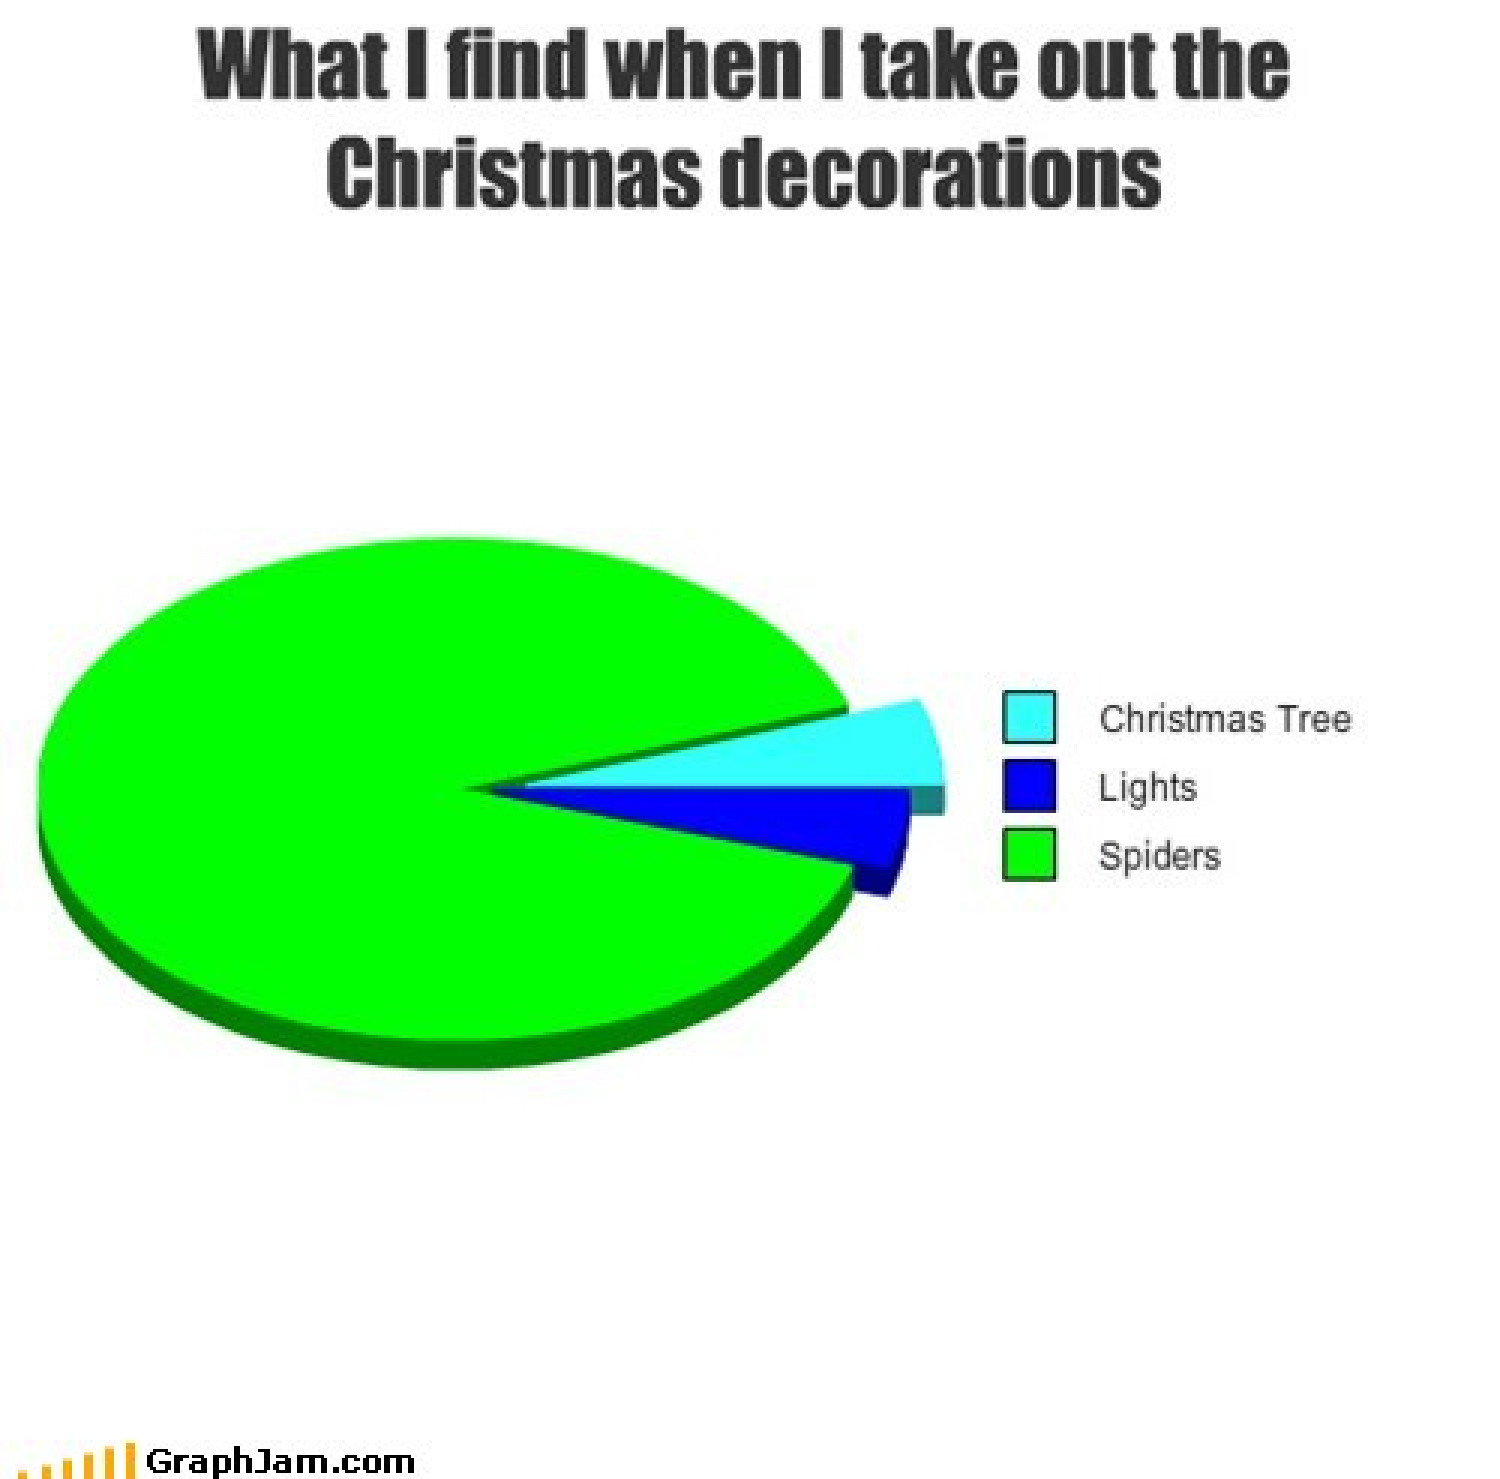 Things I find when I take out the Christmas Decorations Infographic